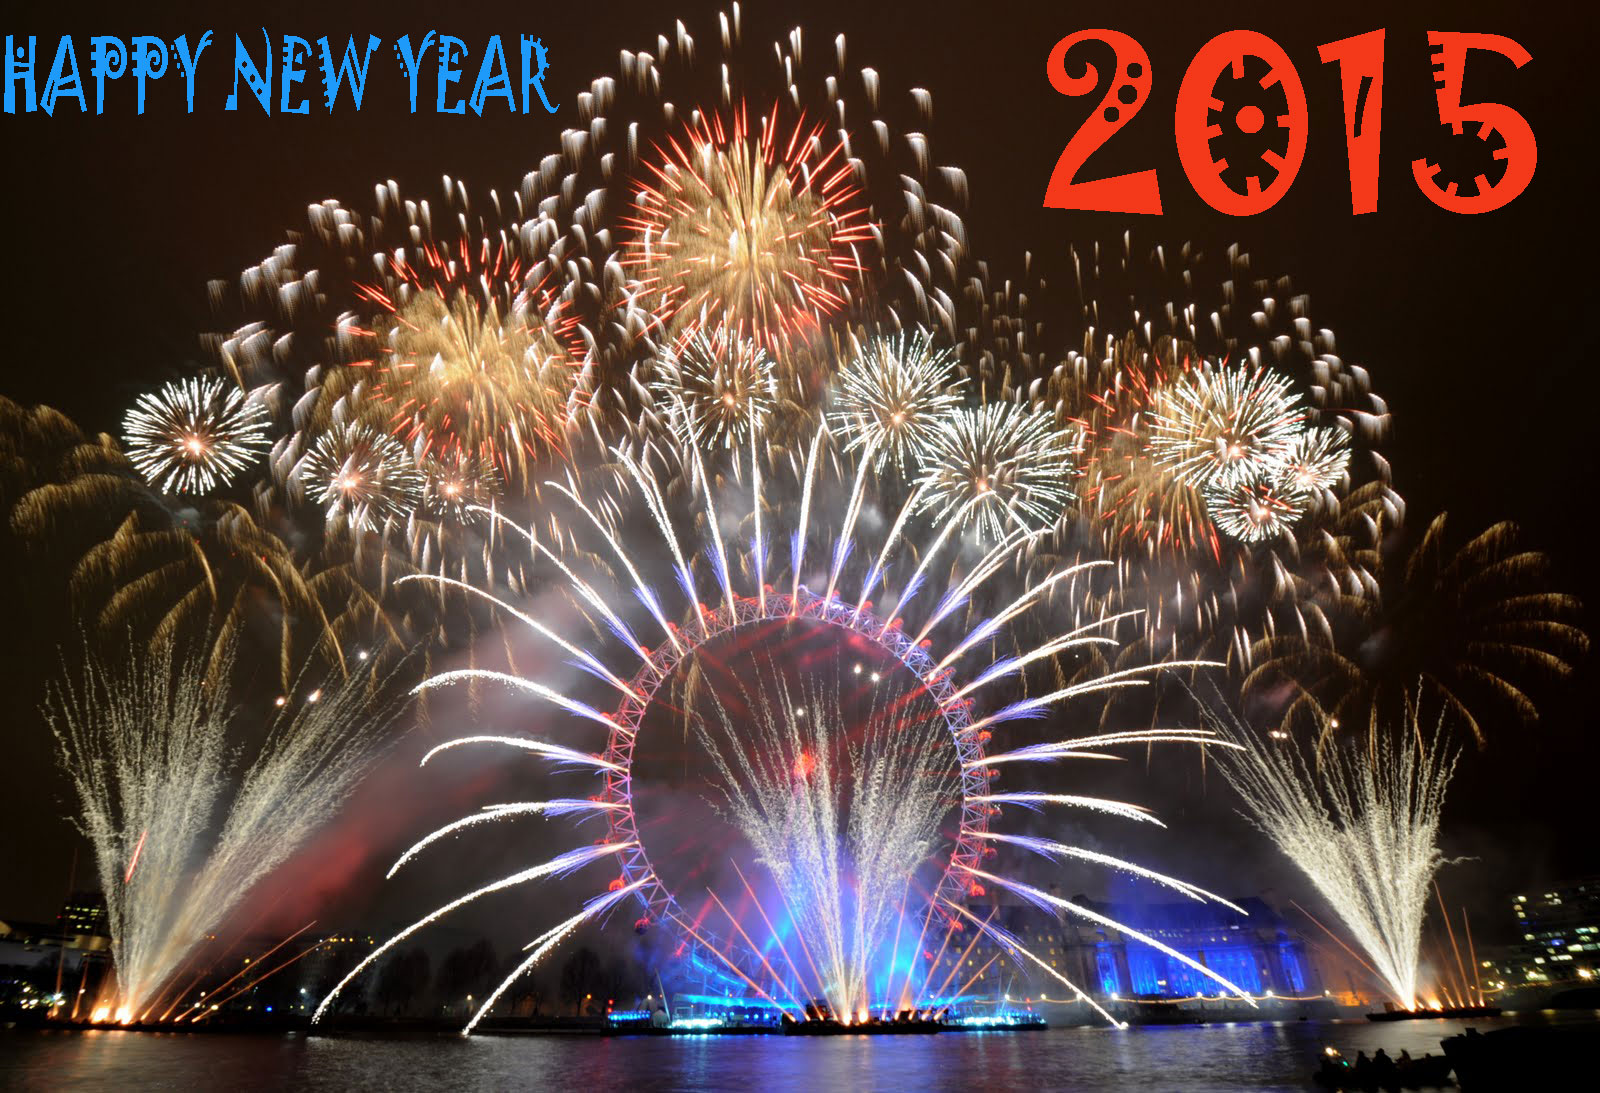 Happy new year 2015 desktop wallpapers hd 1600x1093